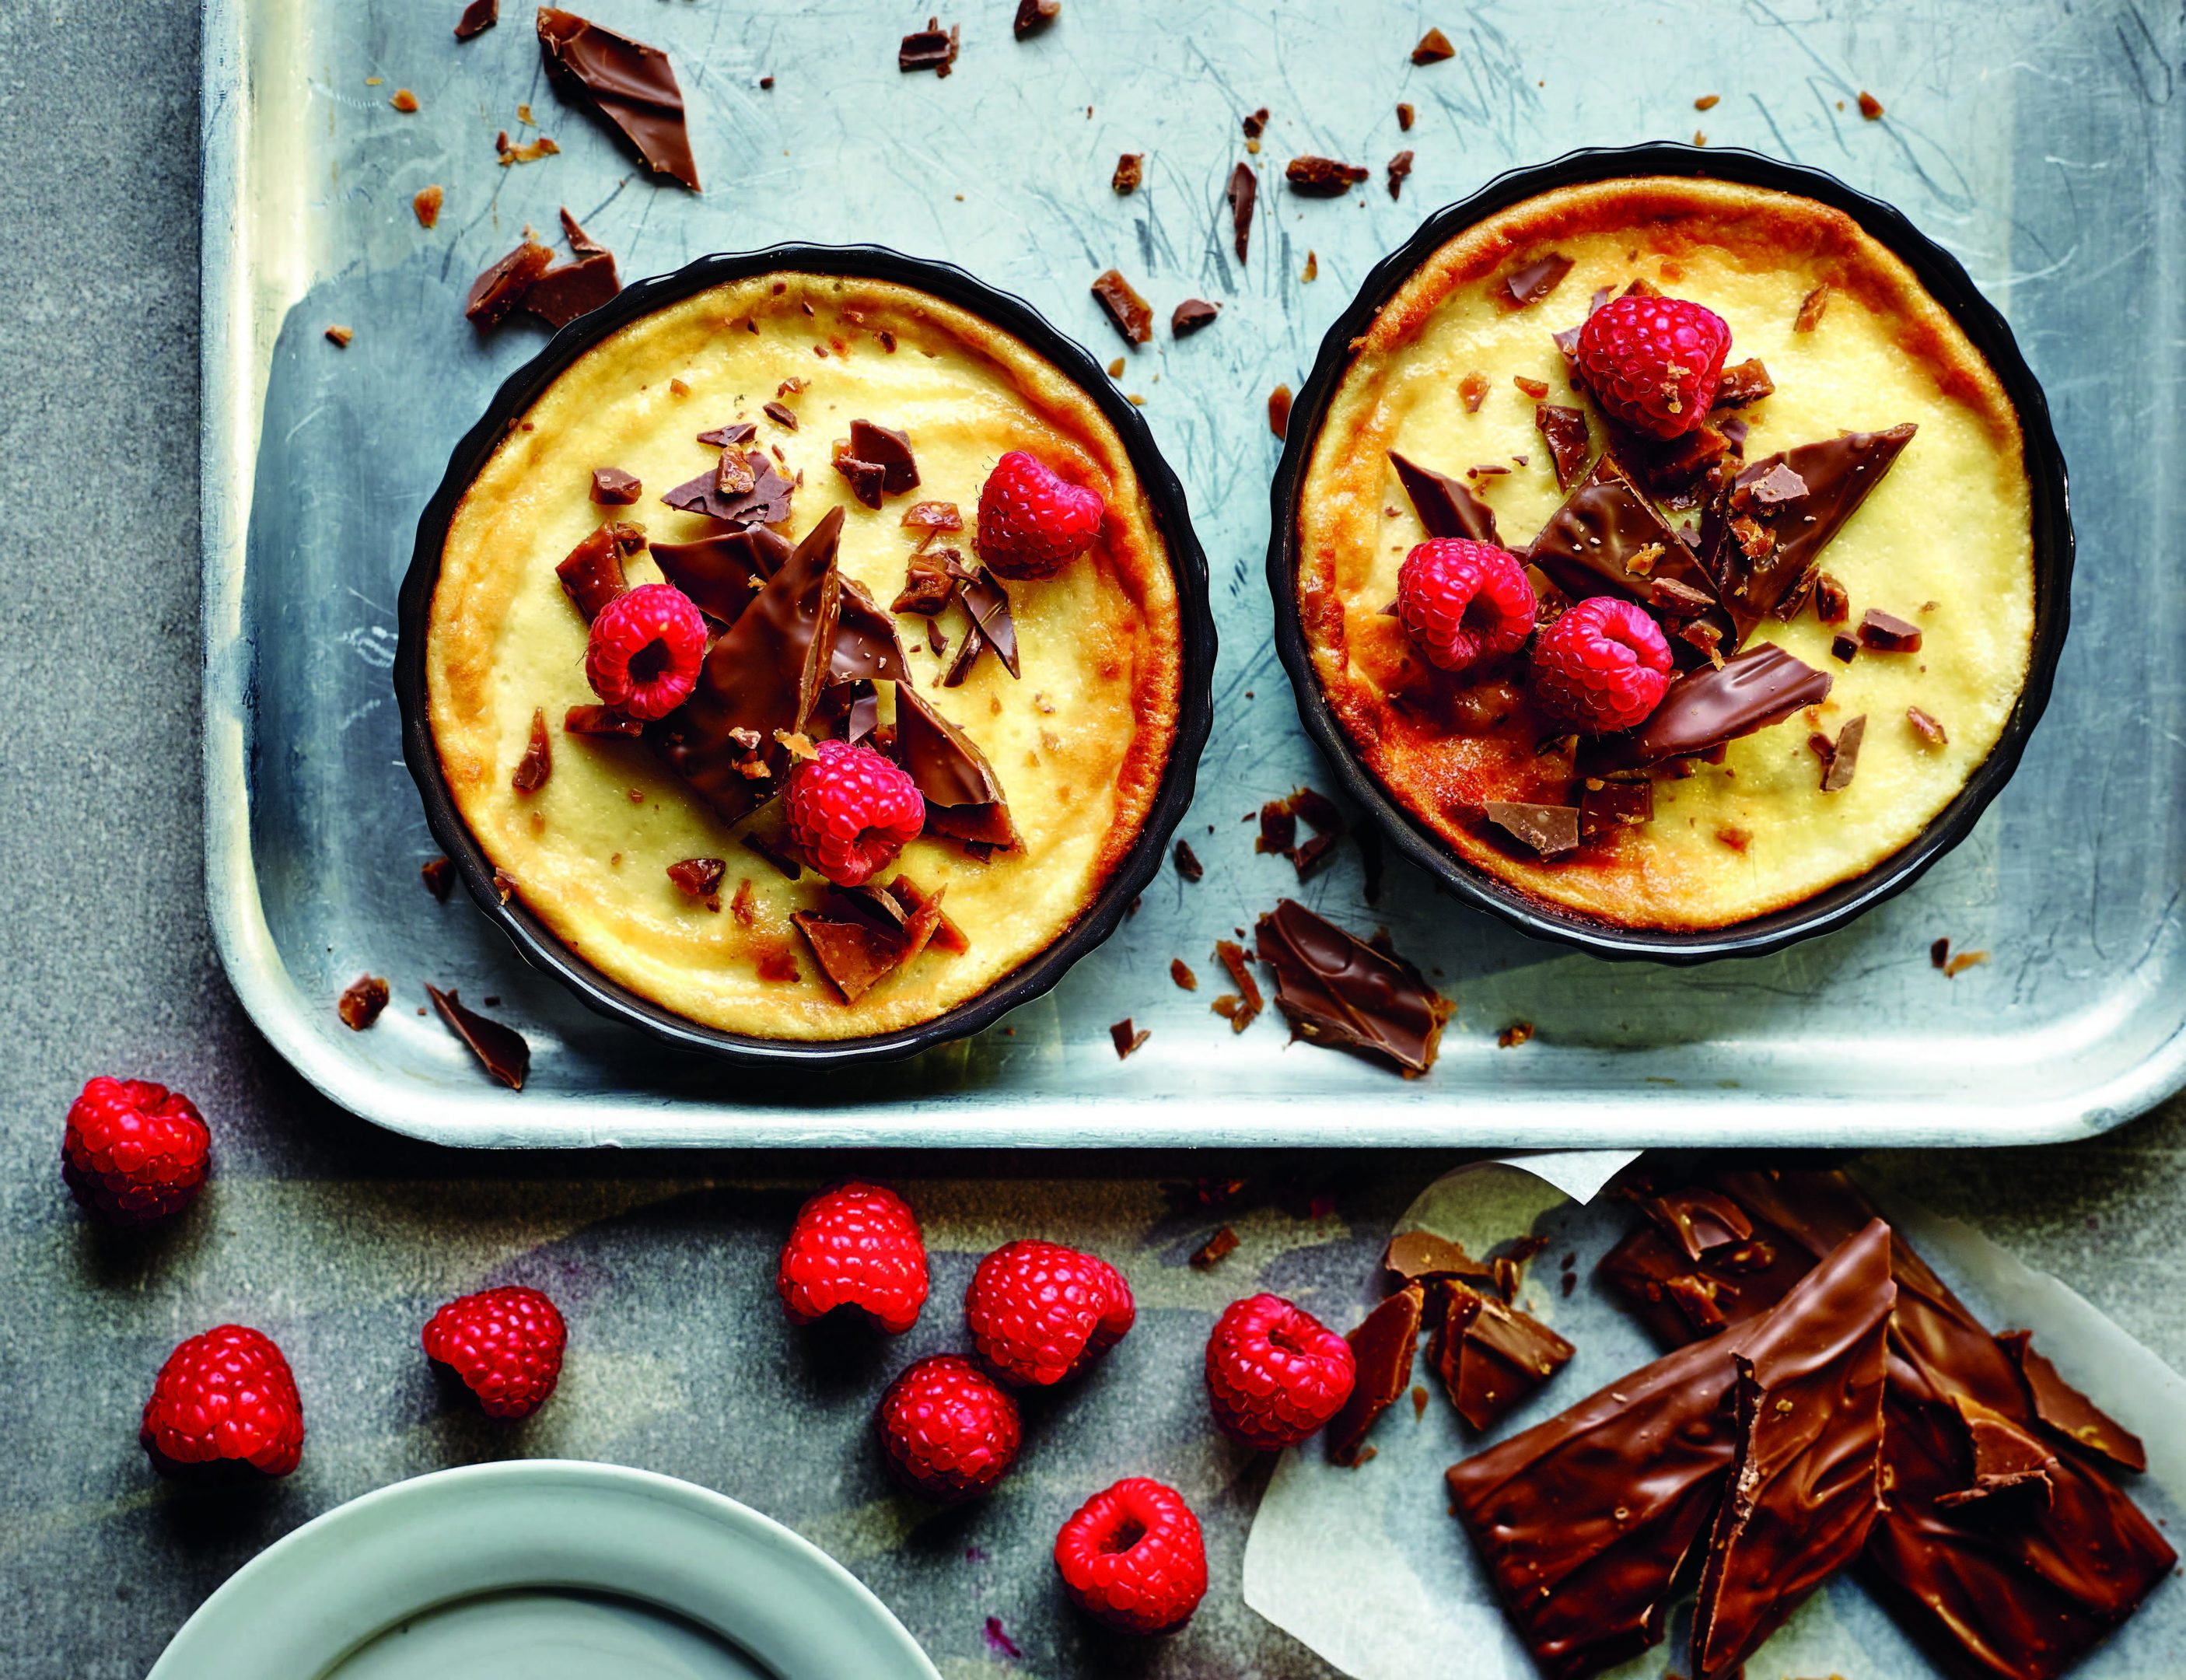 Cheesecakes, from Tom's Daily Plan